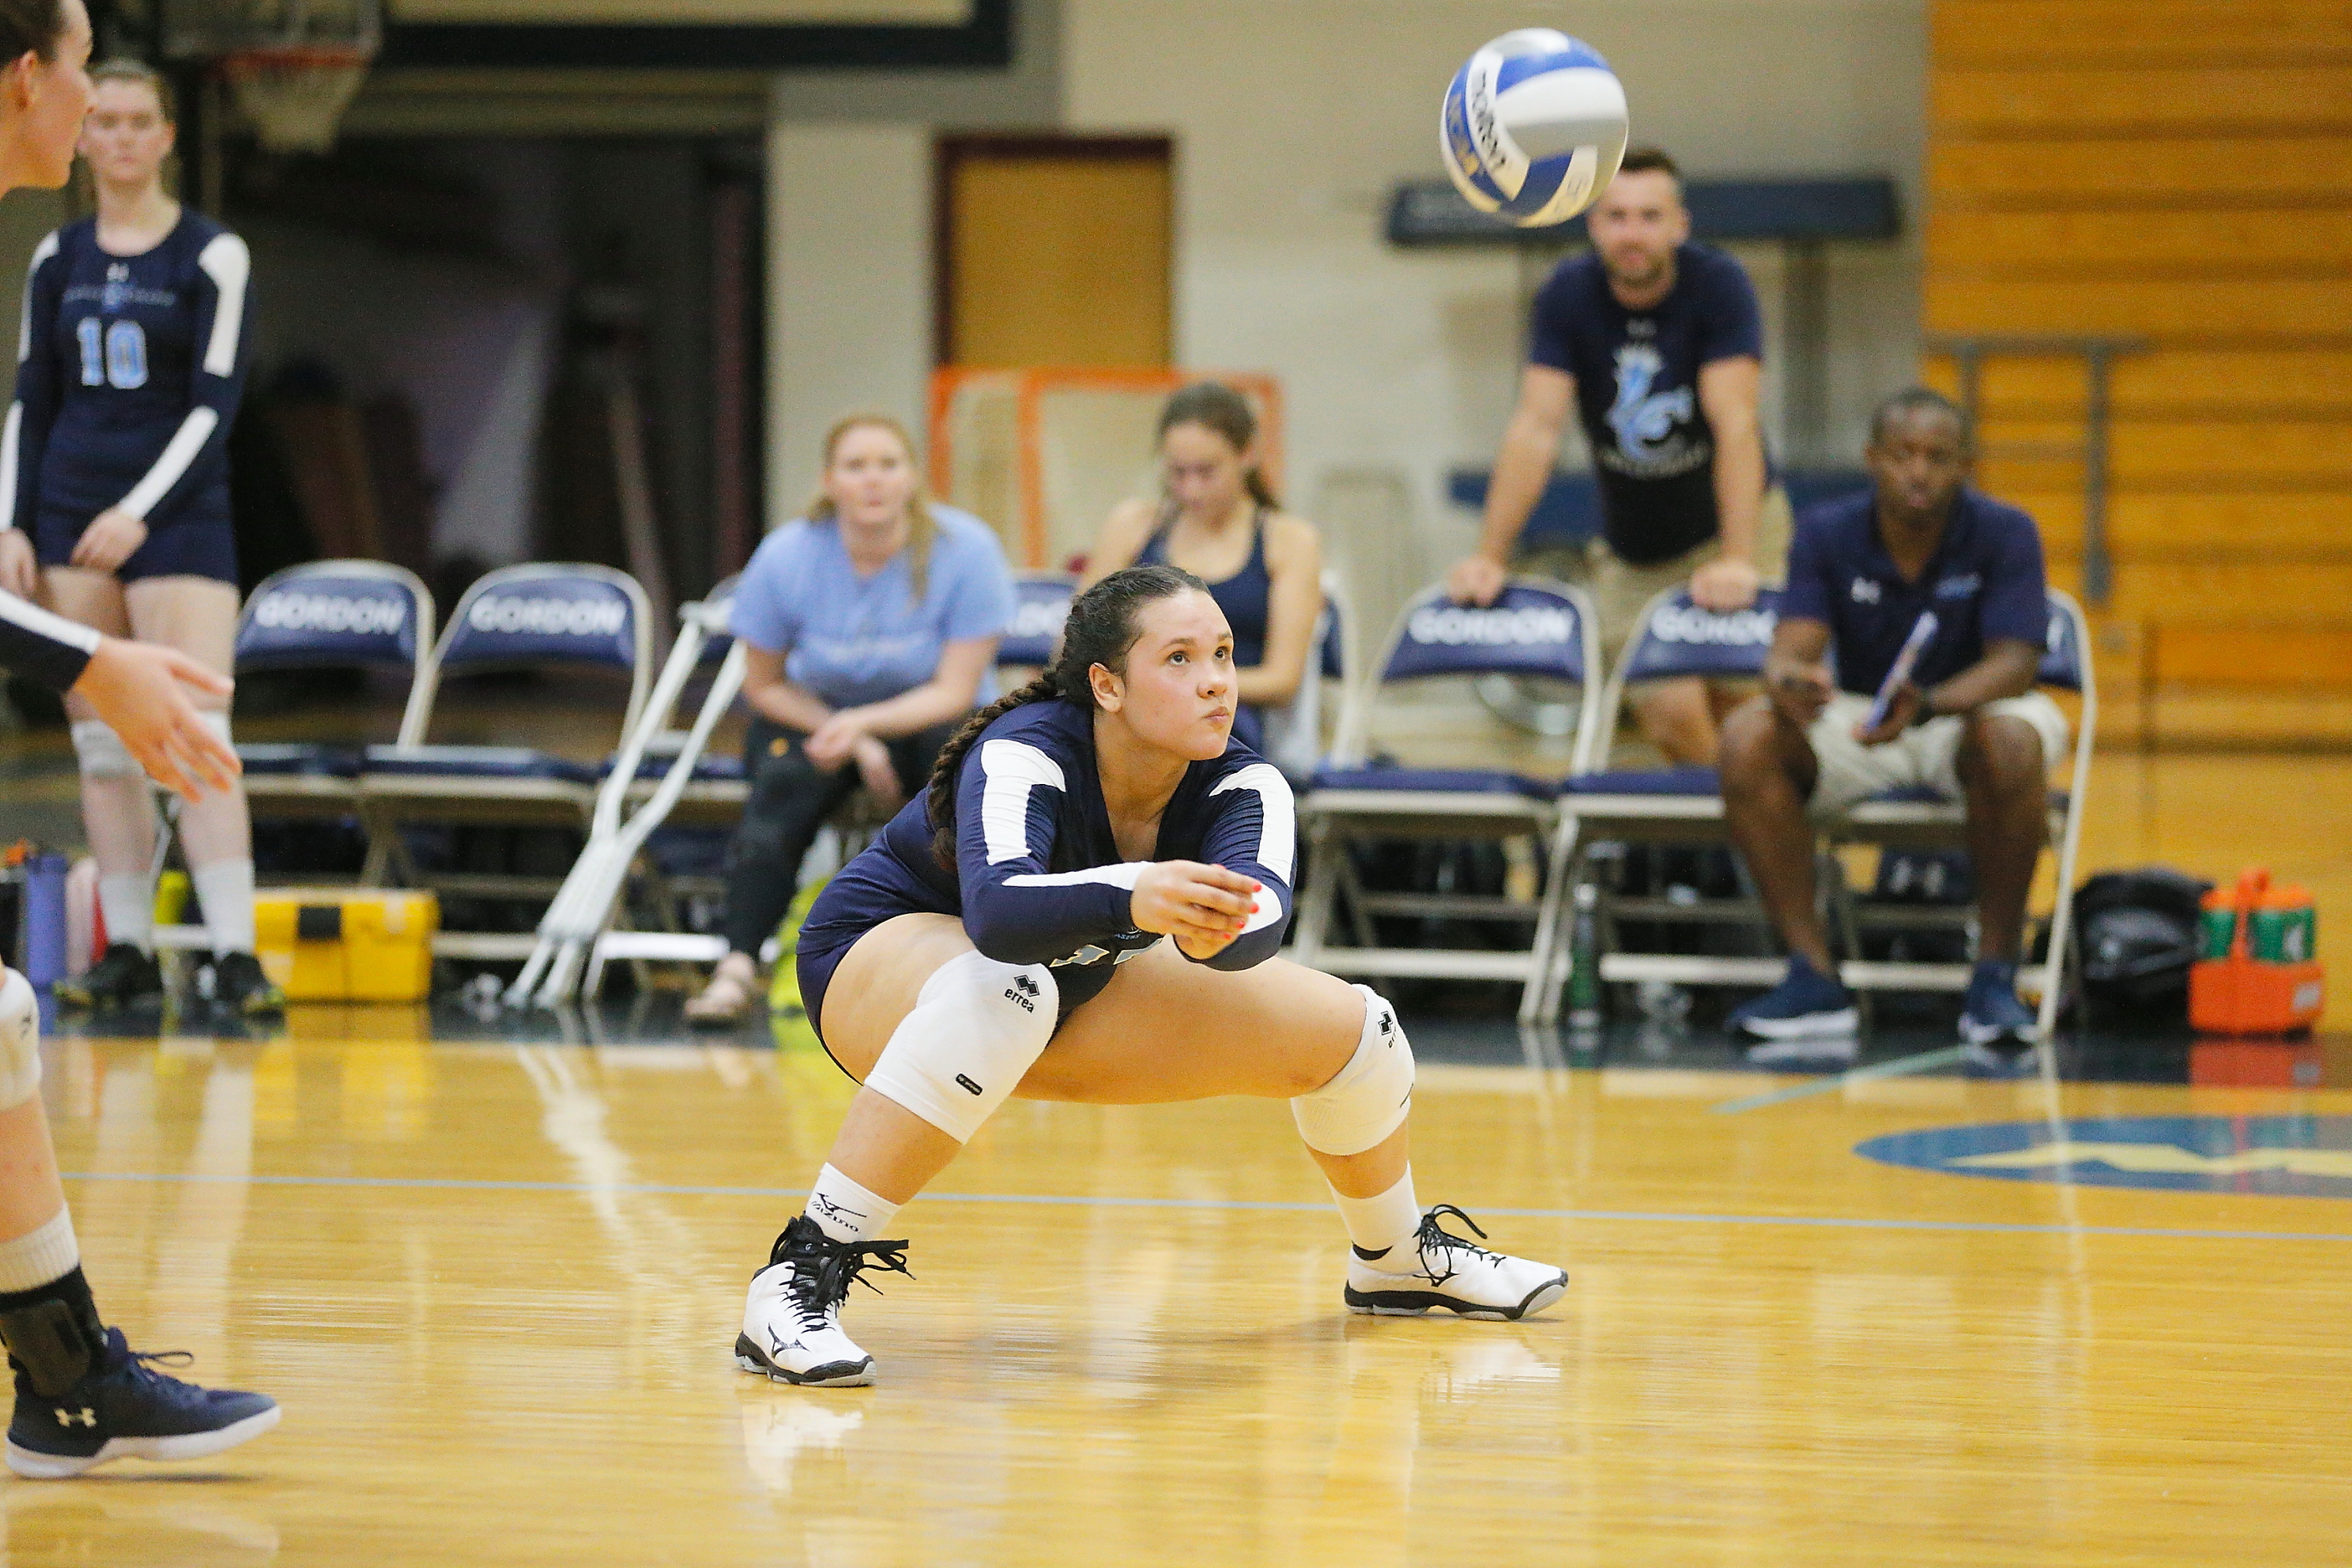 Gordon Drops Lasell in Women's Volleyball Action